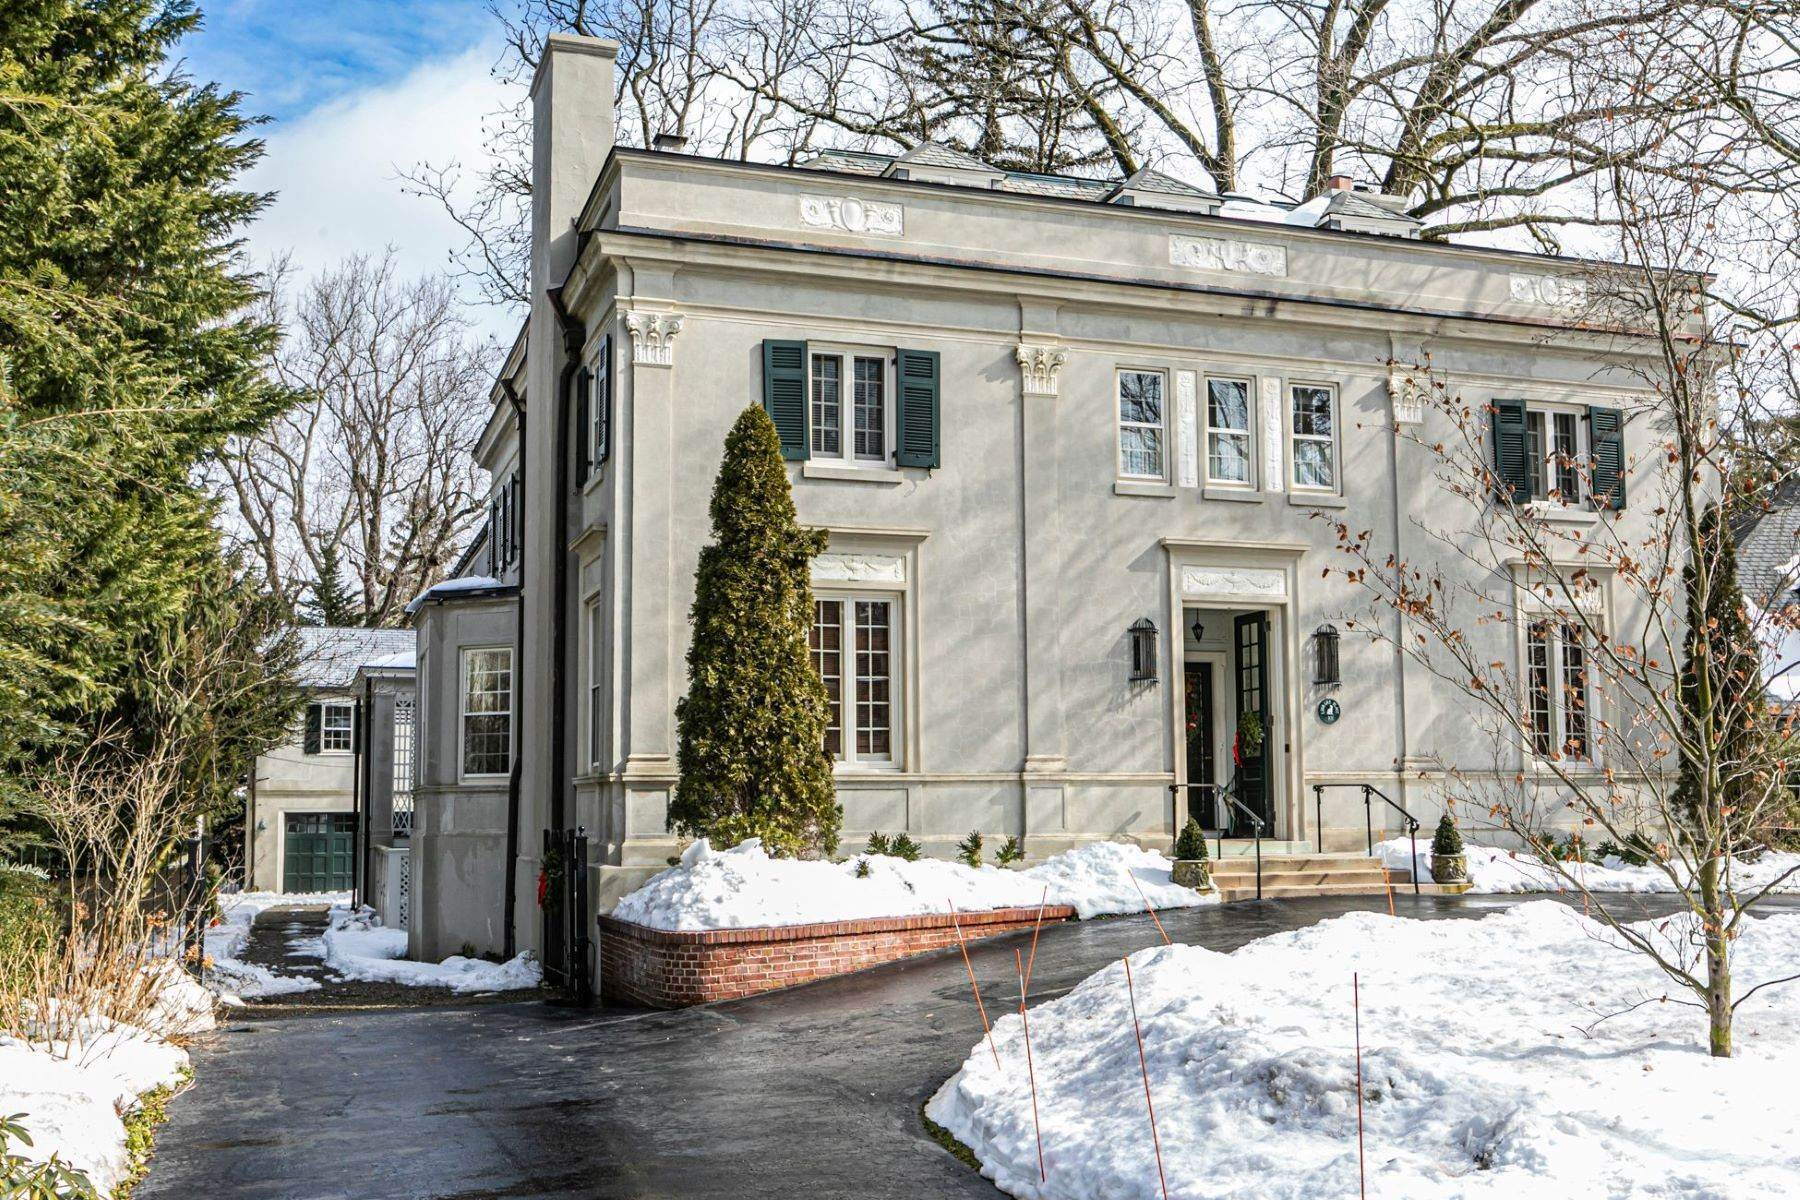 Single Family Homes for Sale at A Dignified Presence on Library Place Since 1905 101 Library Place, Princeton, New Jersey 08540 United States